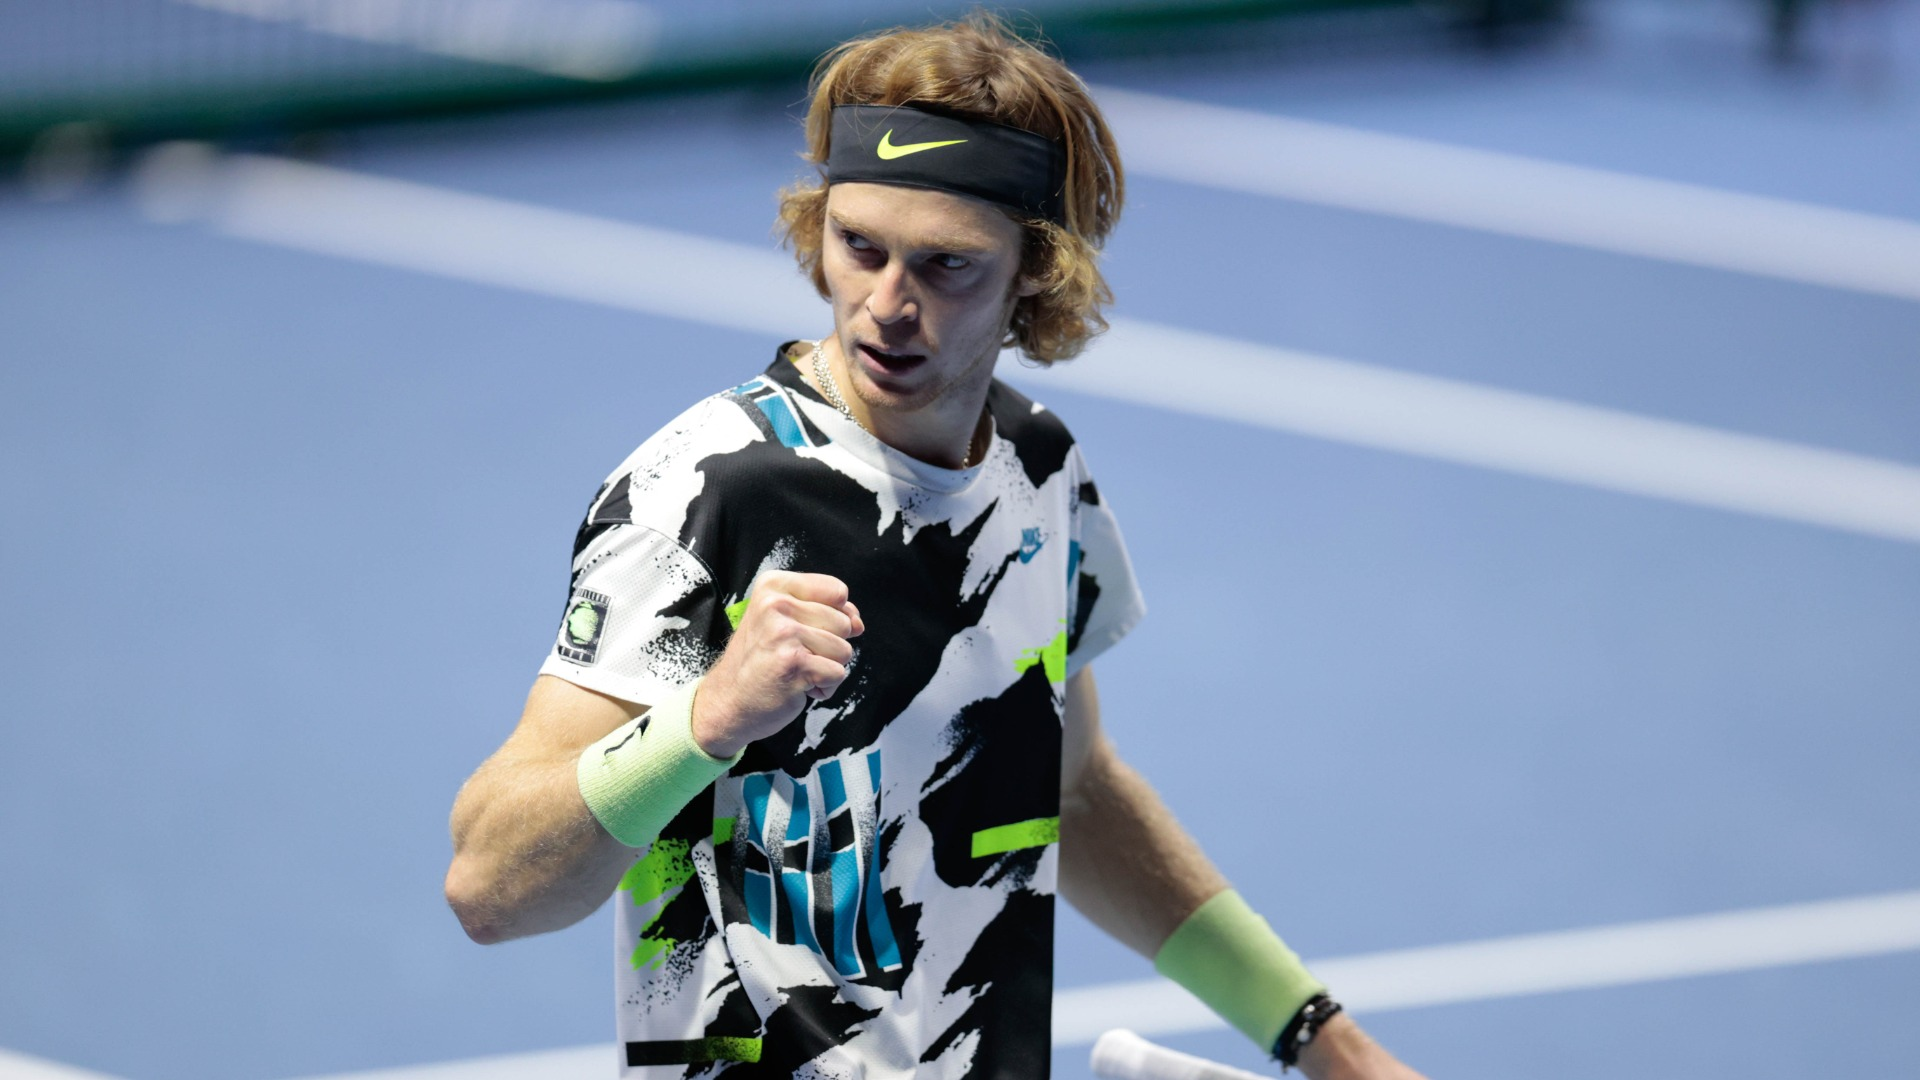 Ruthless Rublev cruises in Vienna as Shapovalov and injured Monfils crash out